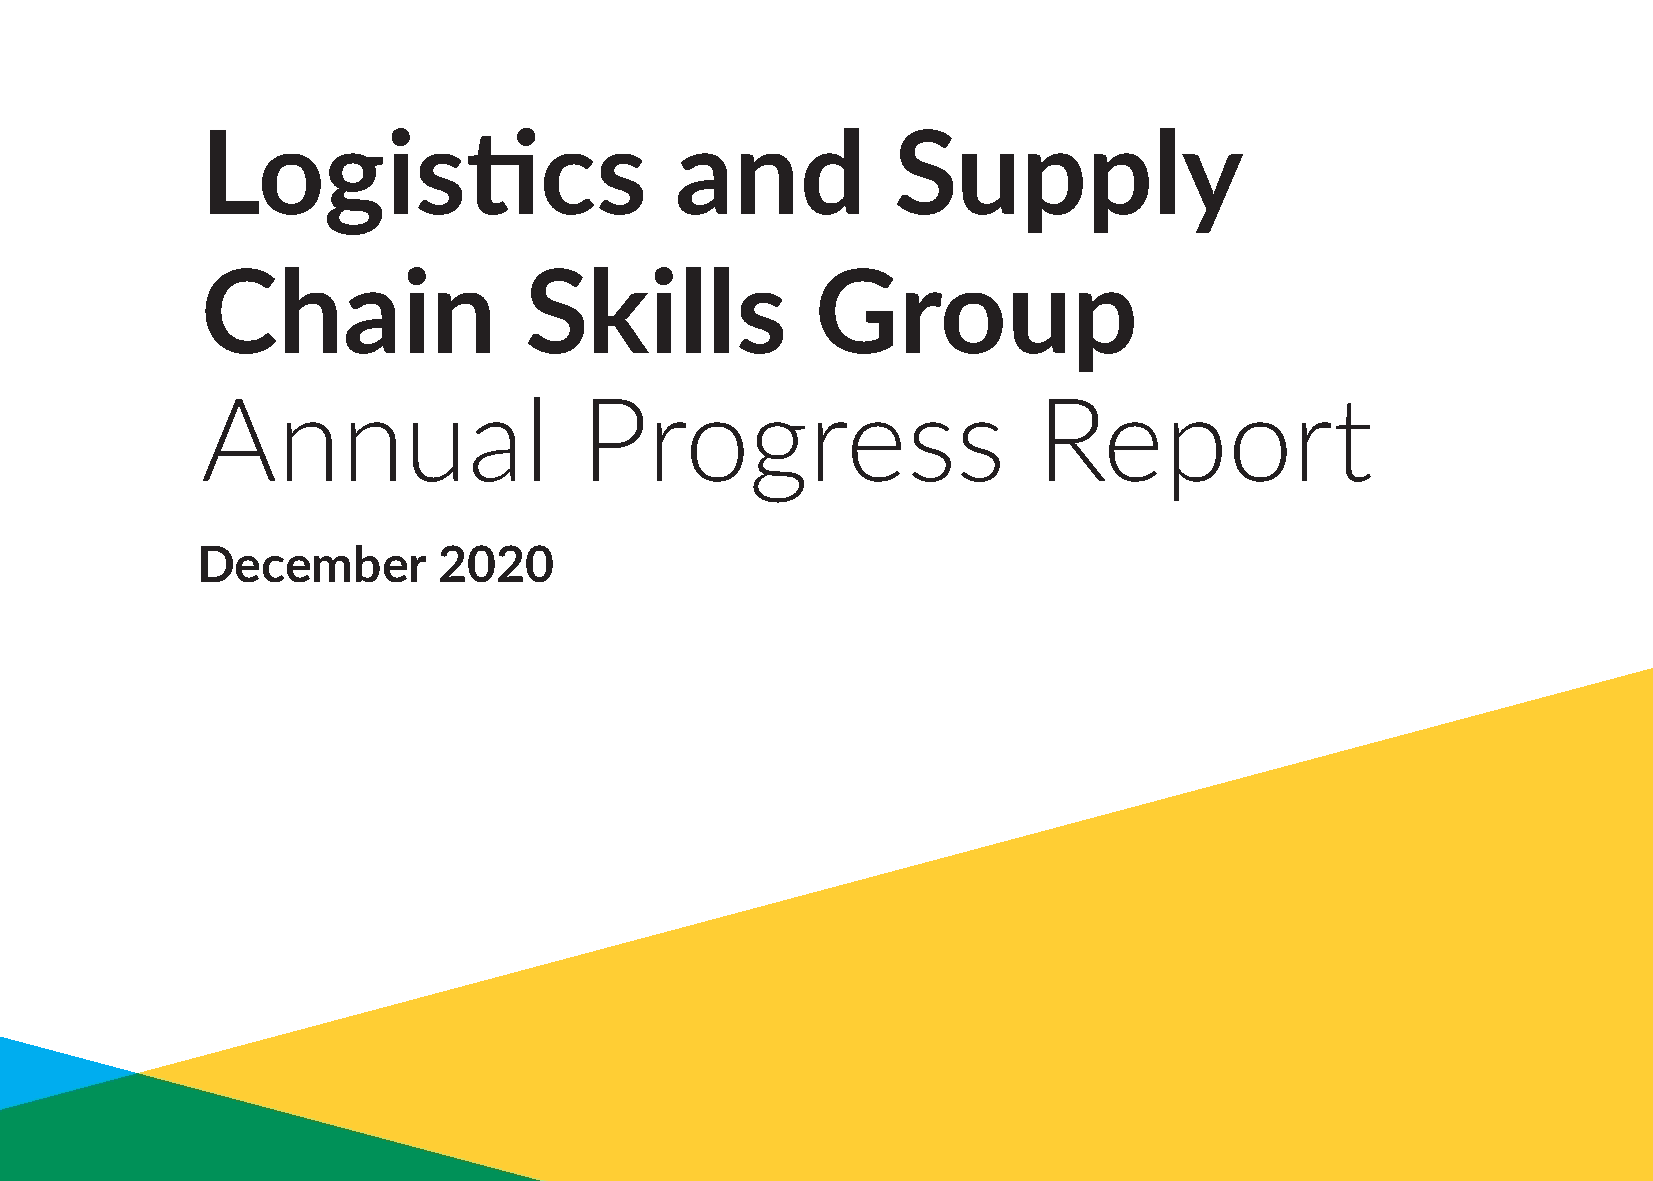 Description for First Progress Report of the Logistics and Supply Chain Skills Group